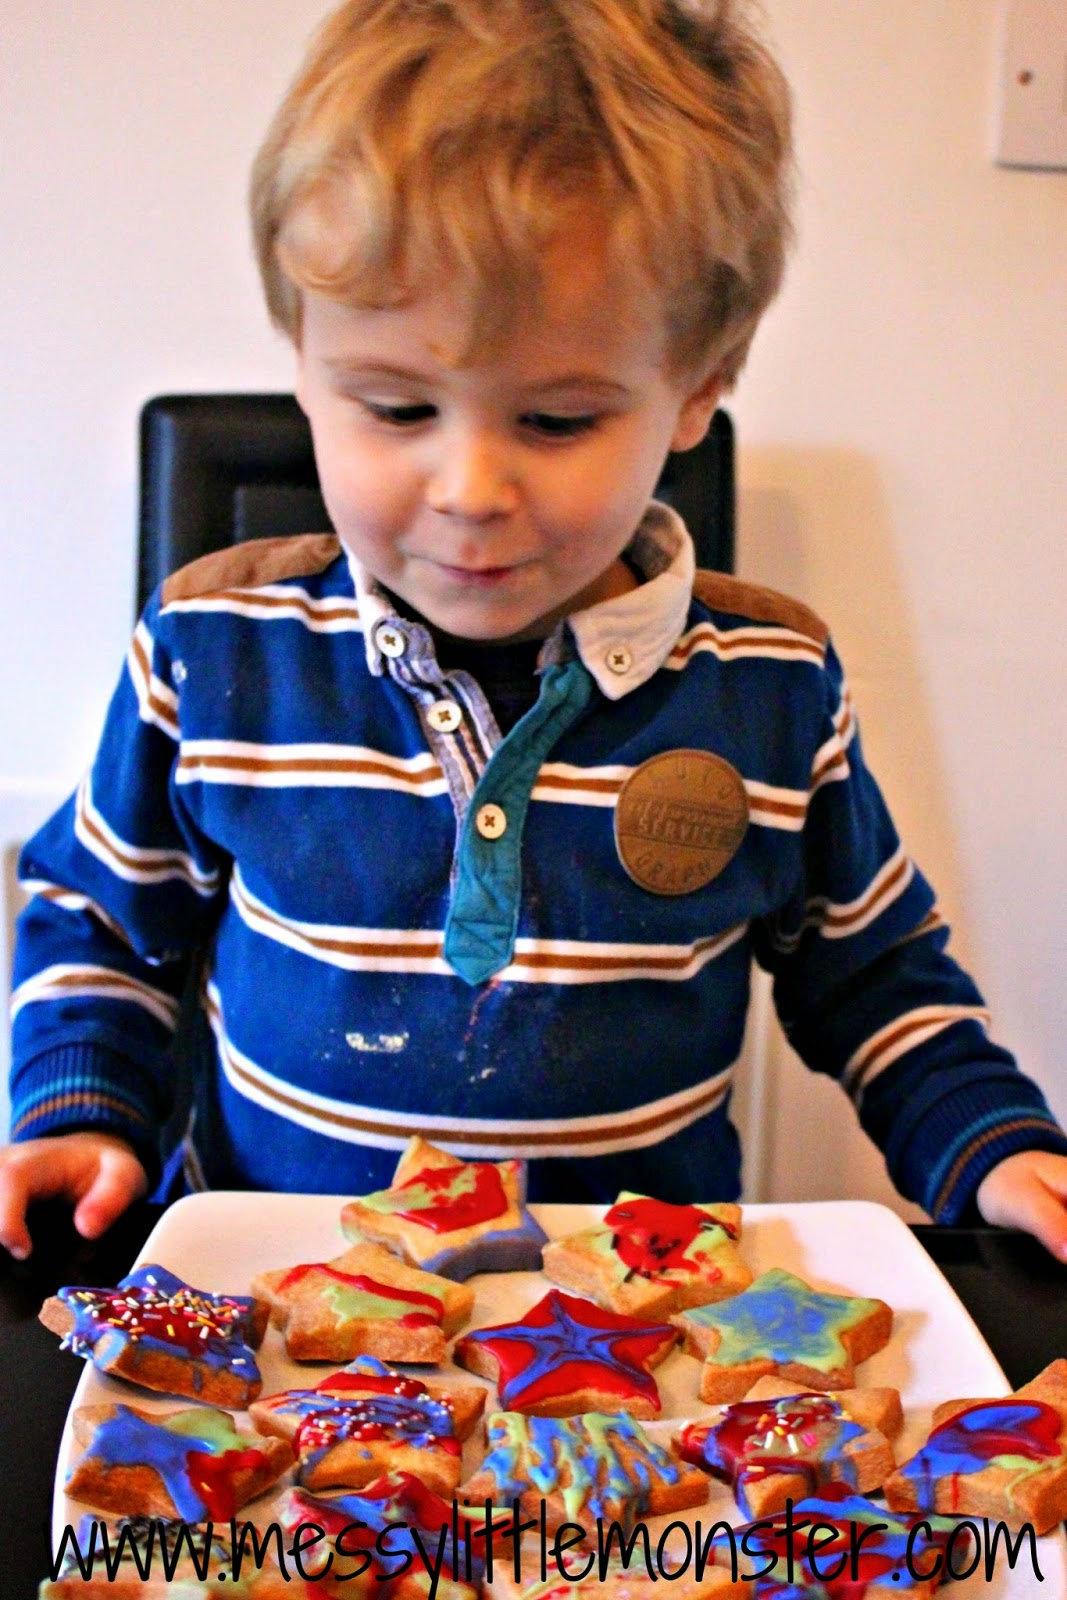 Easy baking for kids- firework biscuits made using a simple biscuit recipe decorated using coloured icing and sprinkles. Great for toddlers and preschoolers as well as older kids. a fun bonfire night, new years eve or birthday baking activity idea.